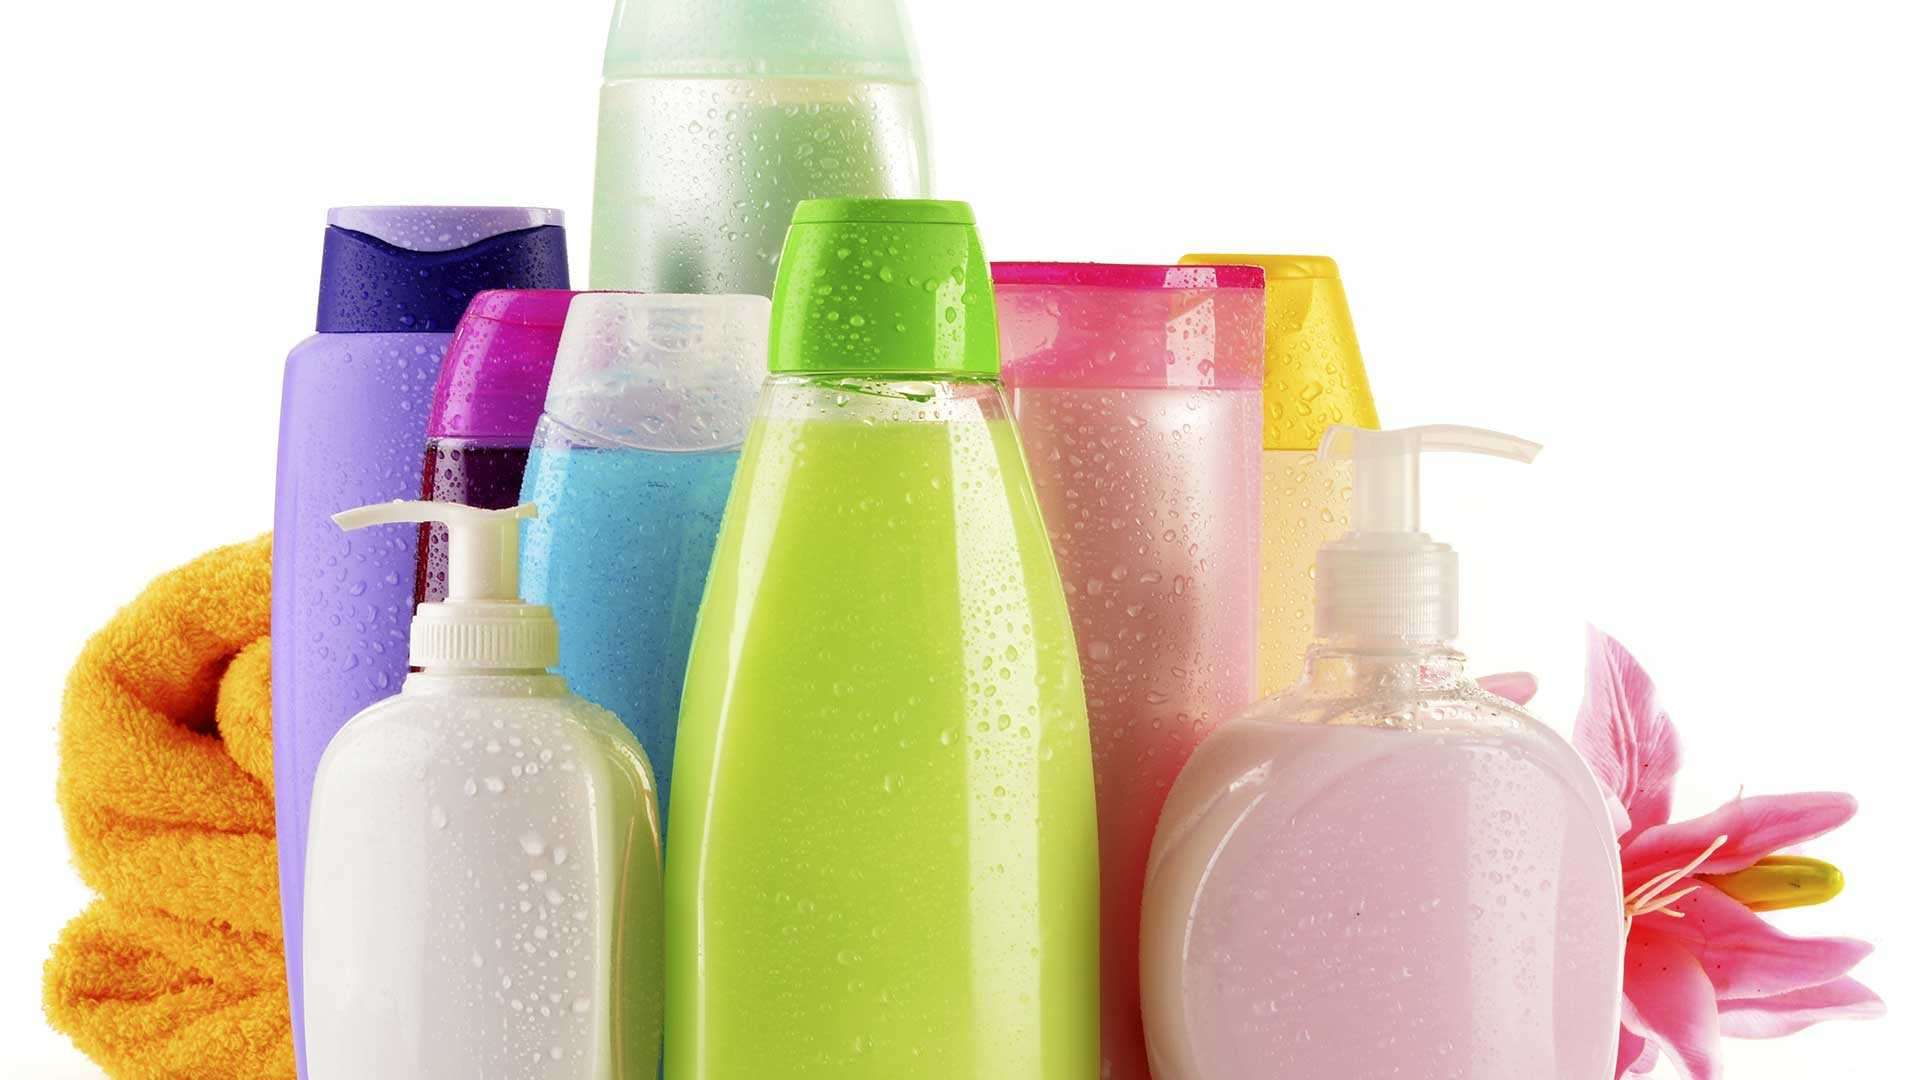 A photo of plastic packaging of various consumer products